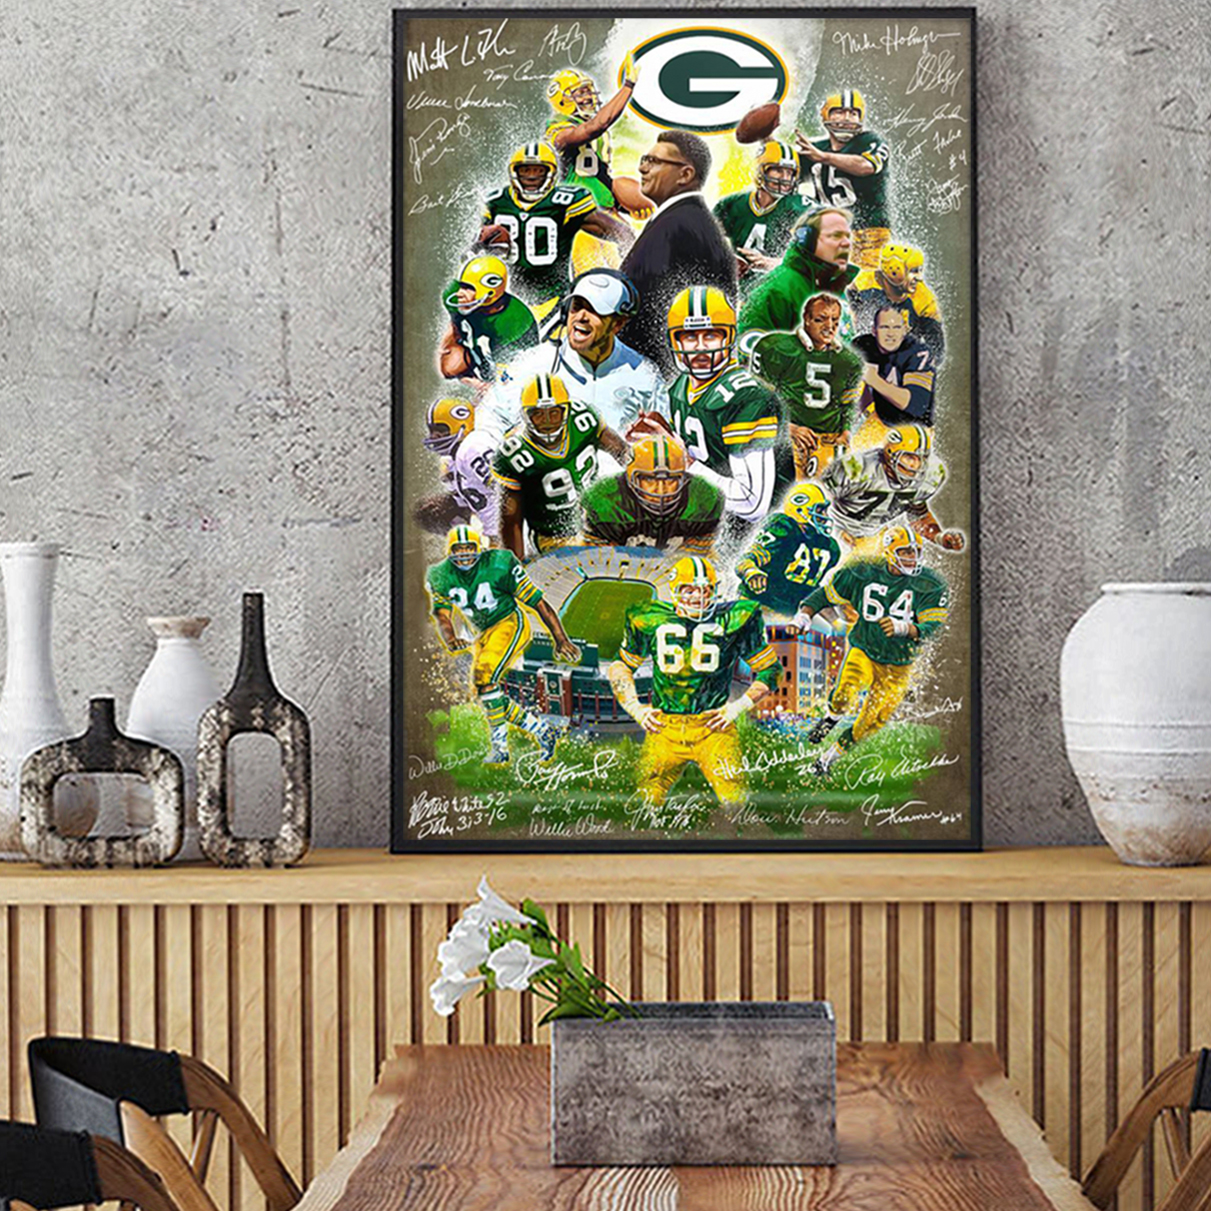 Green bay packers signature poster A1